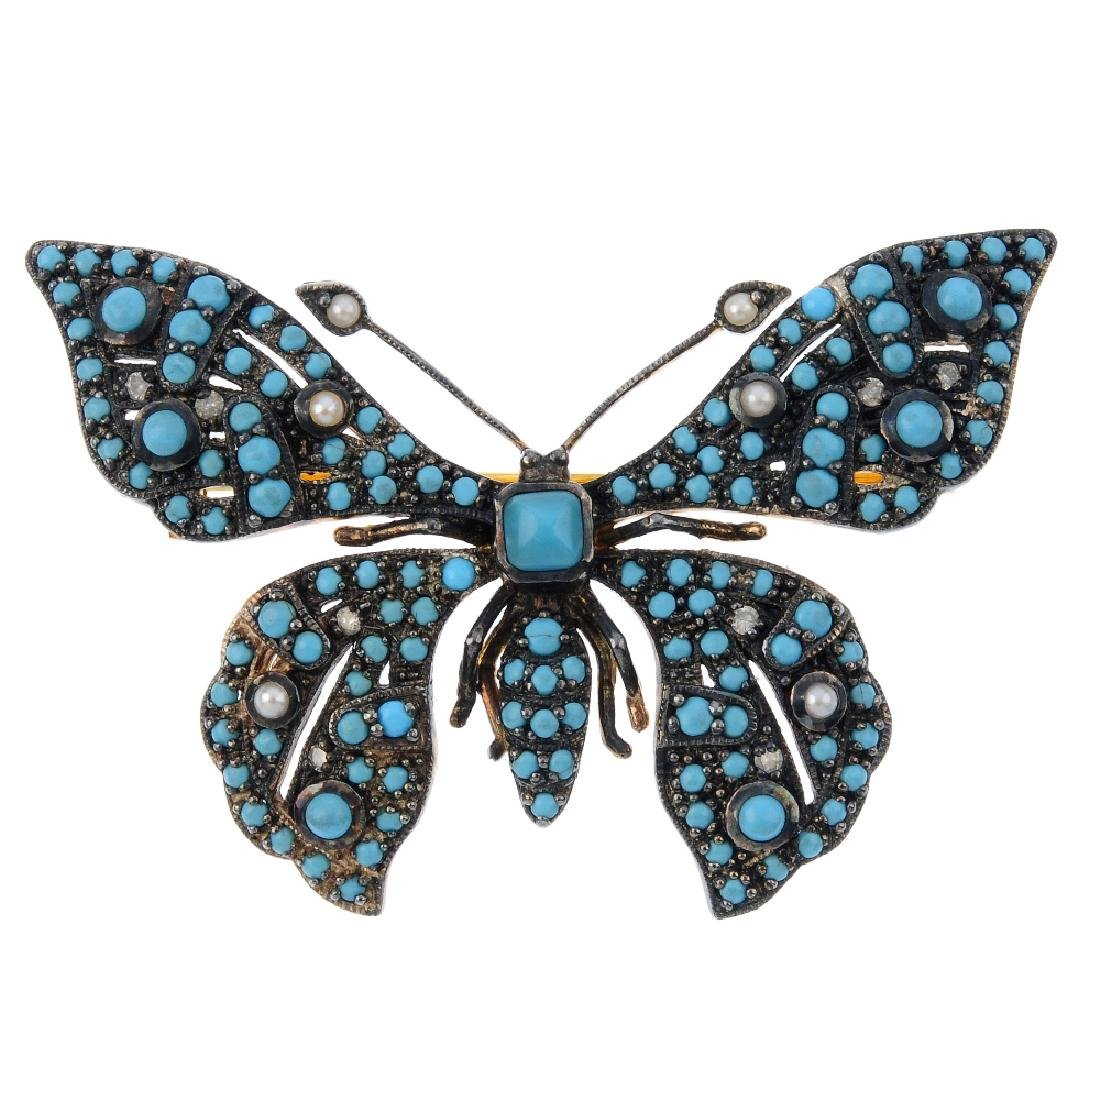 A turquoise and seed pearl butterfly brooch. The brooch